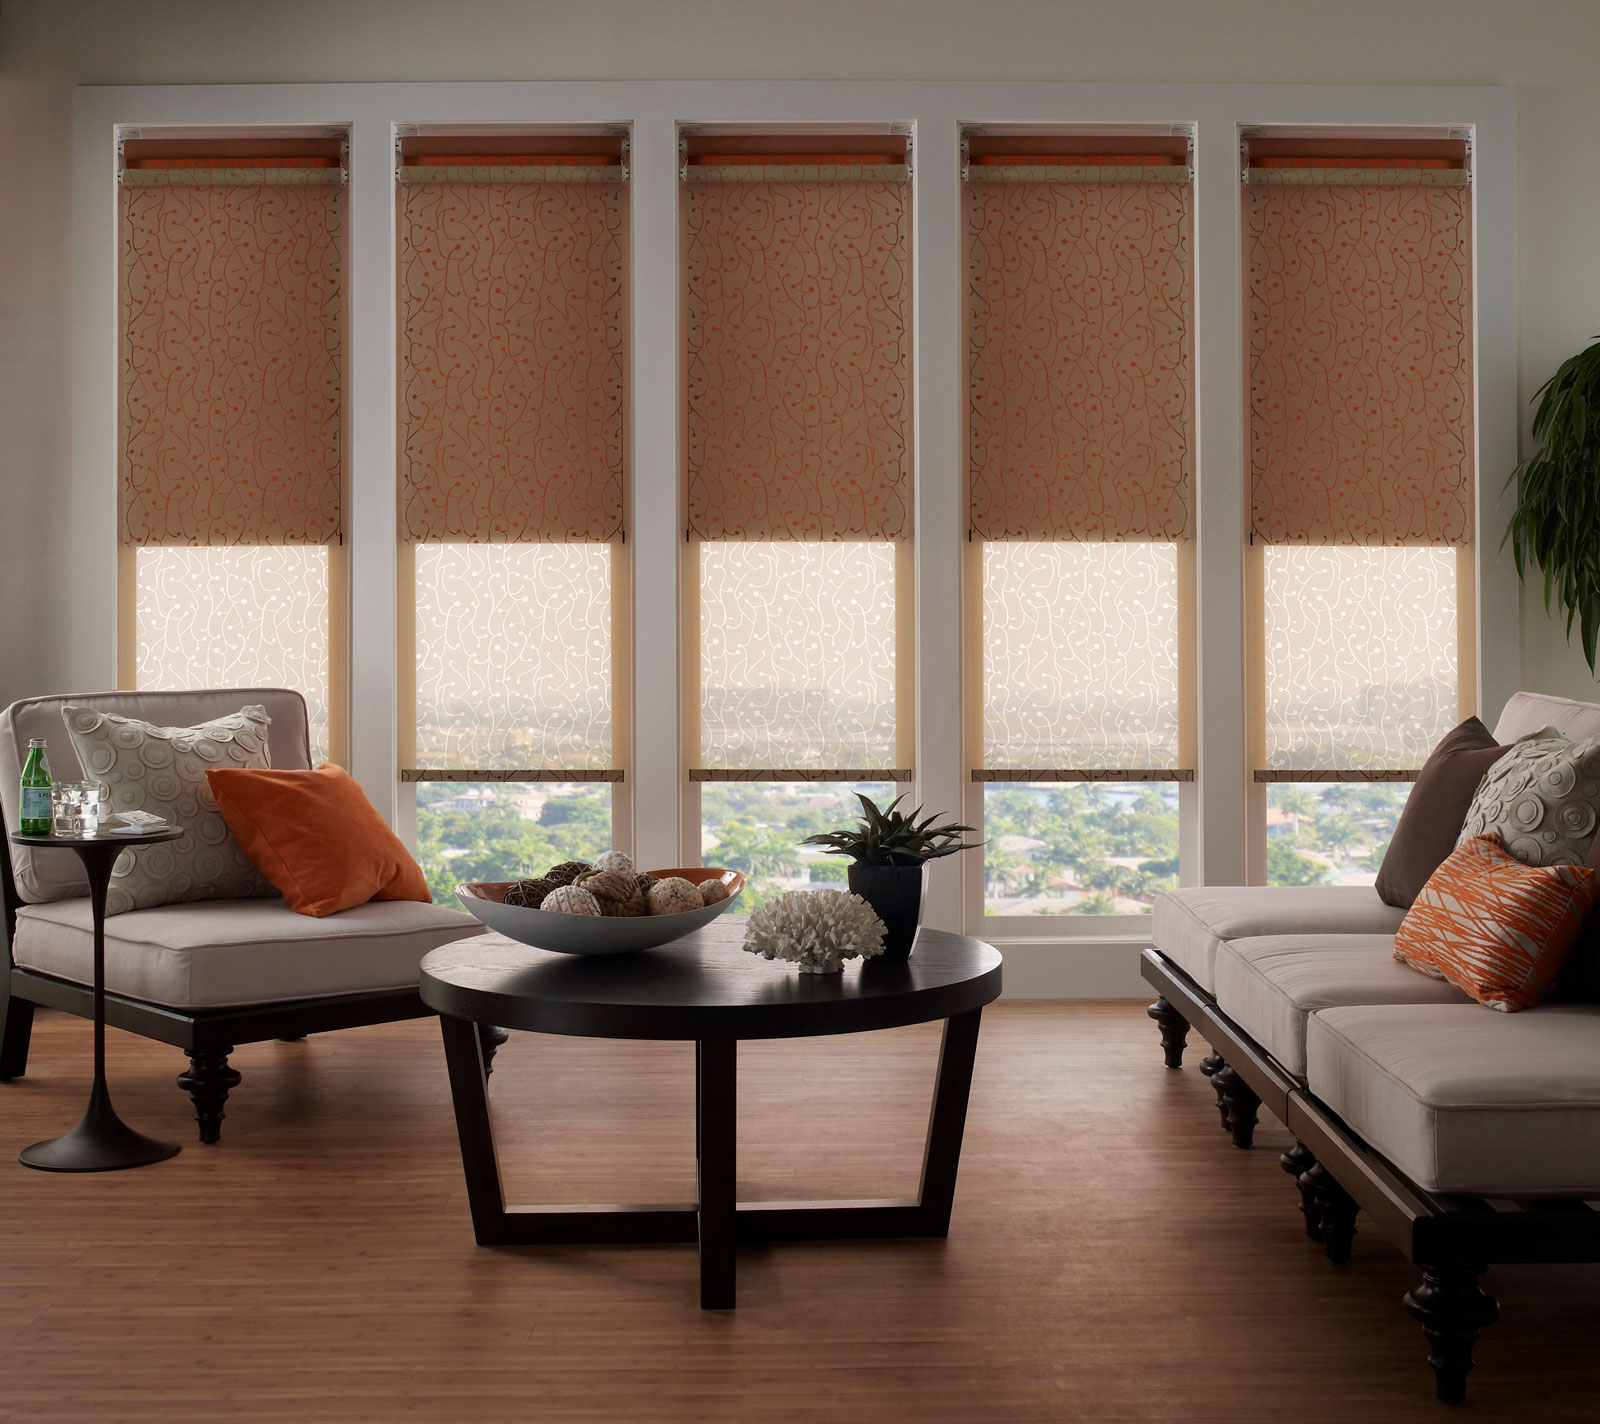 Lutron reduce glare